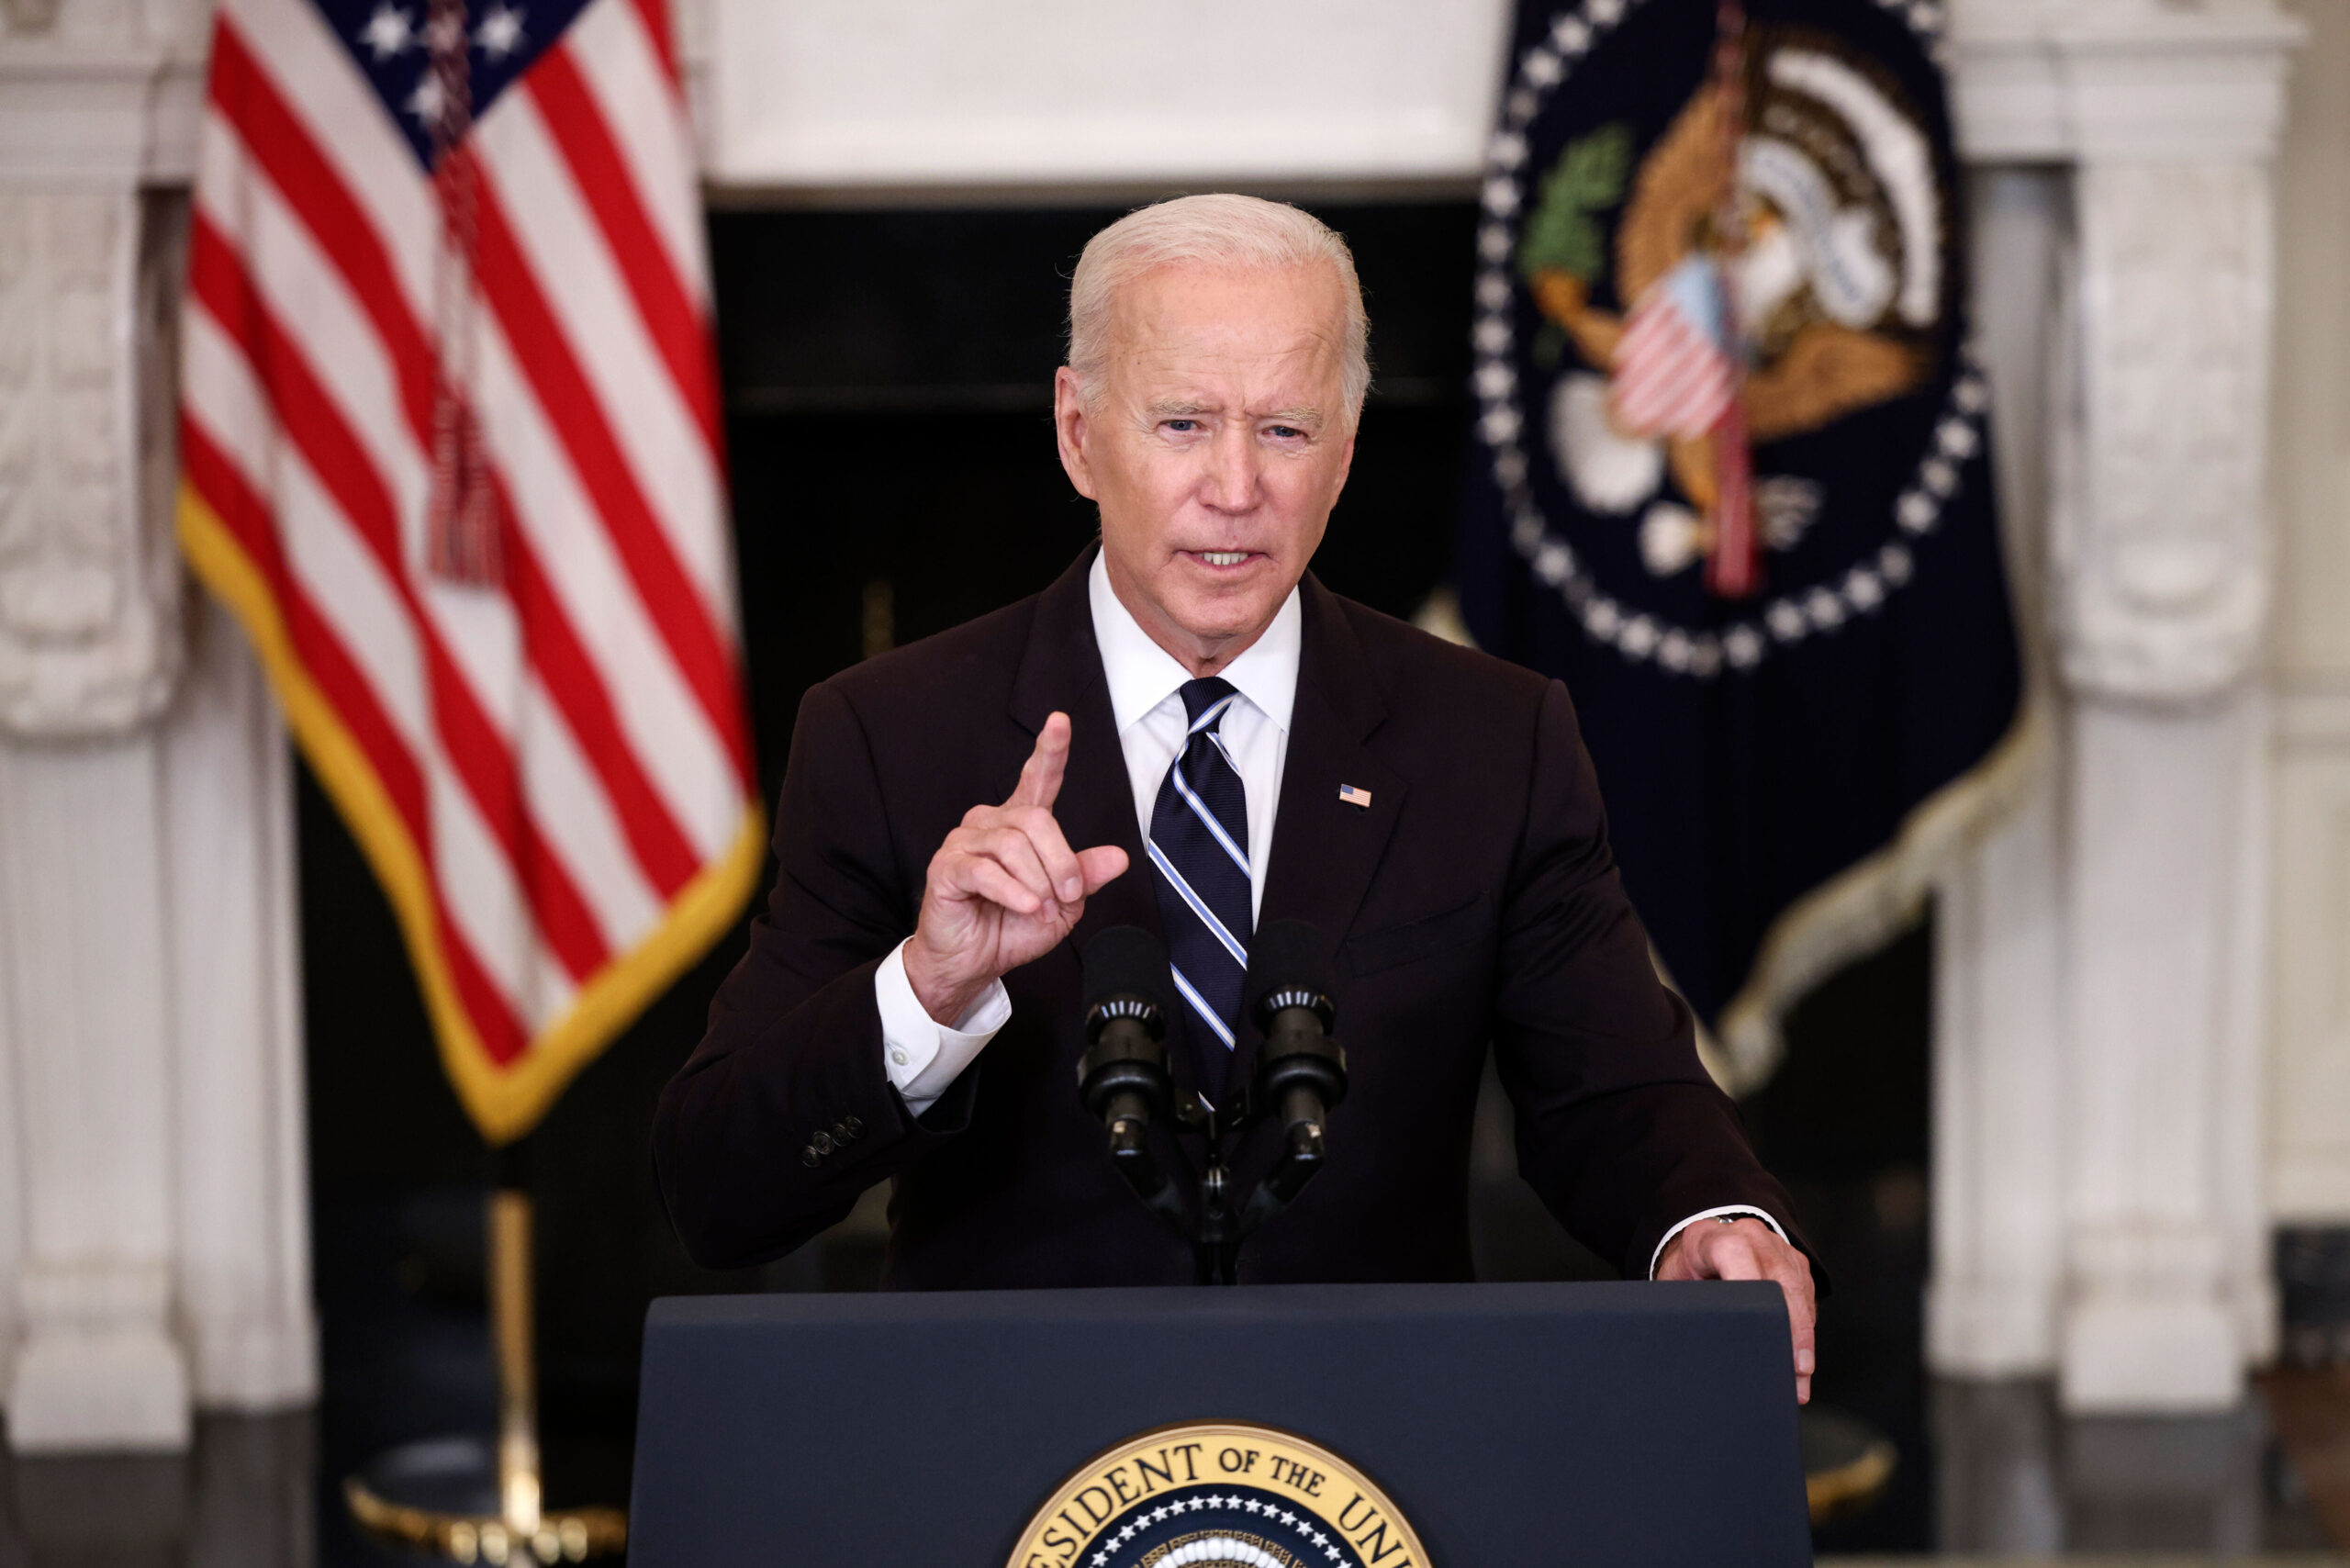 <i>Kevin Dietsch/Getty Images</i><br/>President Joe Biden speaks on Covid-19 vaccinations.